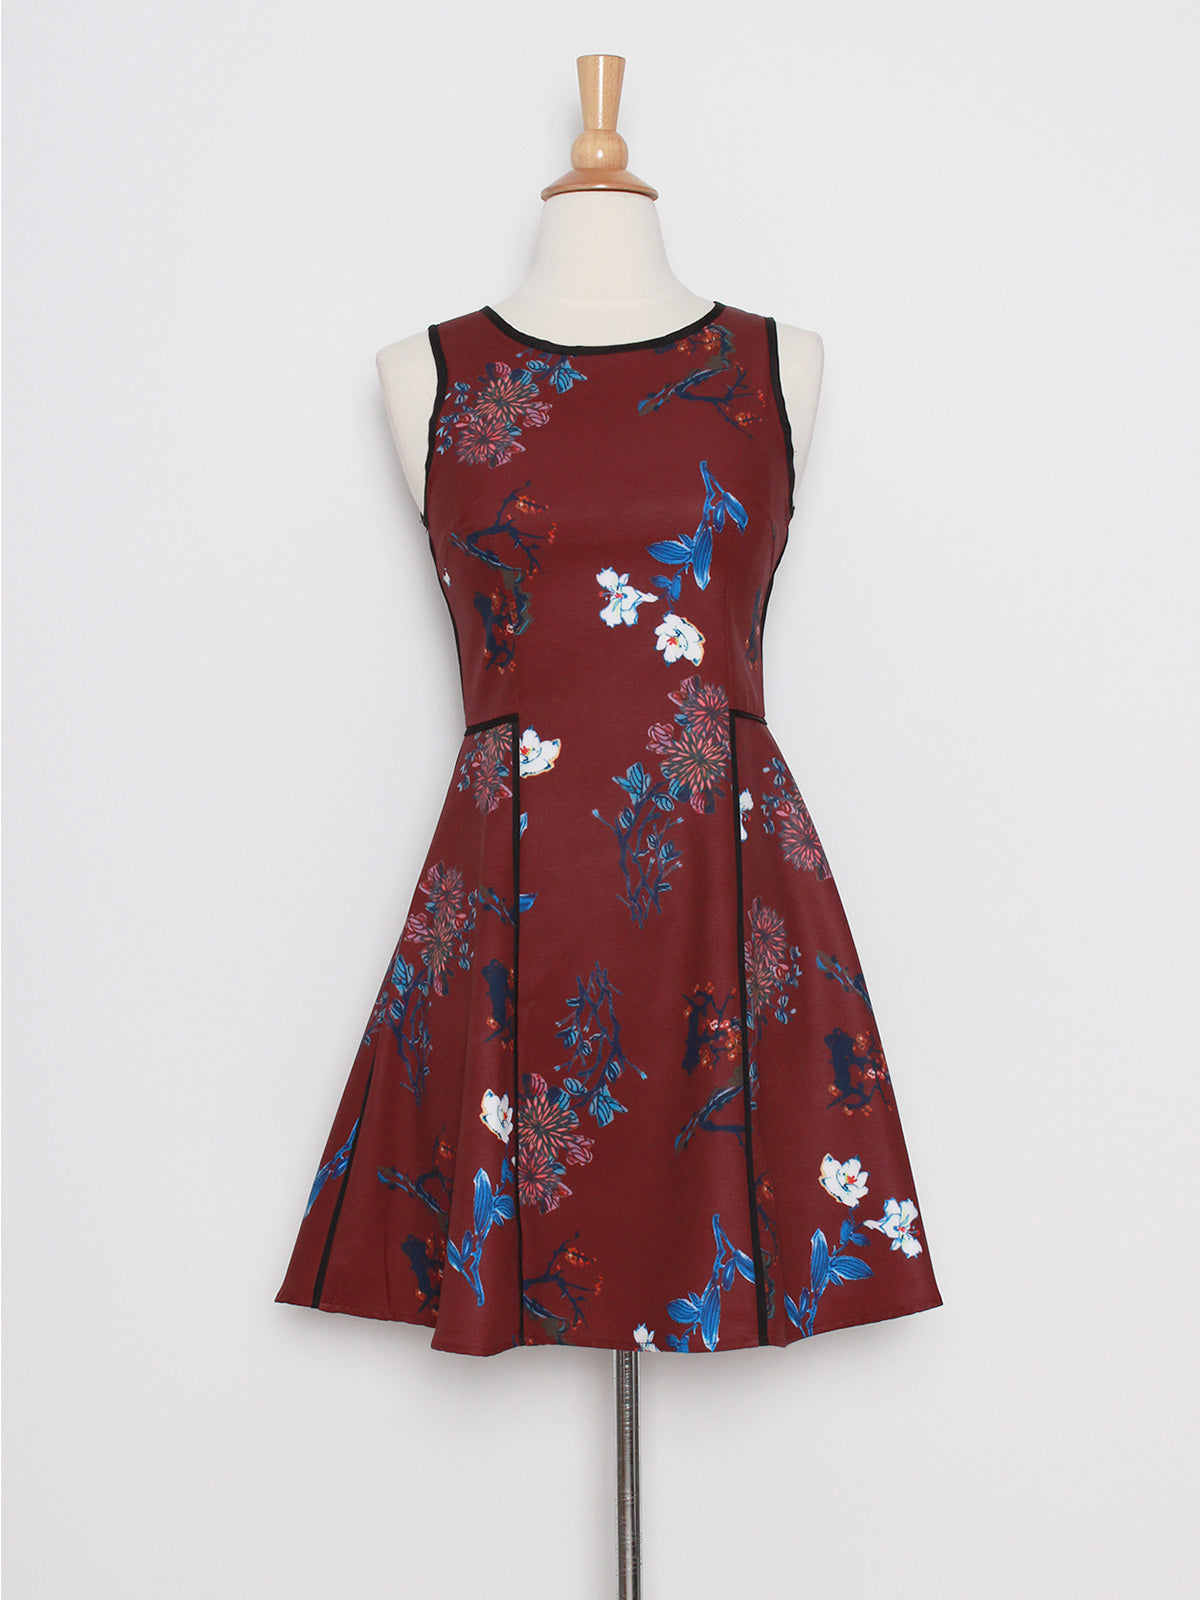 Carin Floral Bliss in Wine